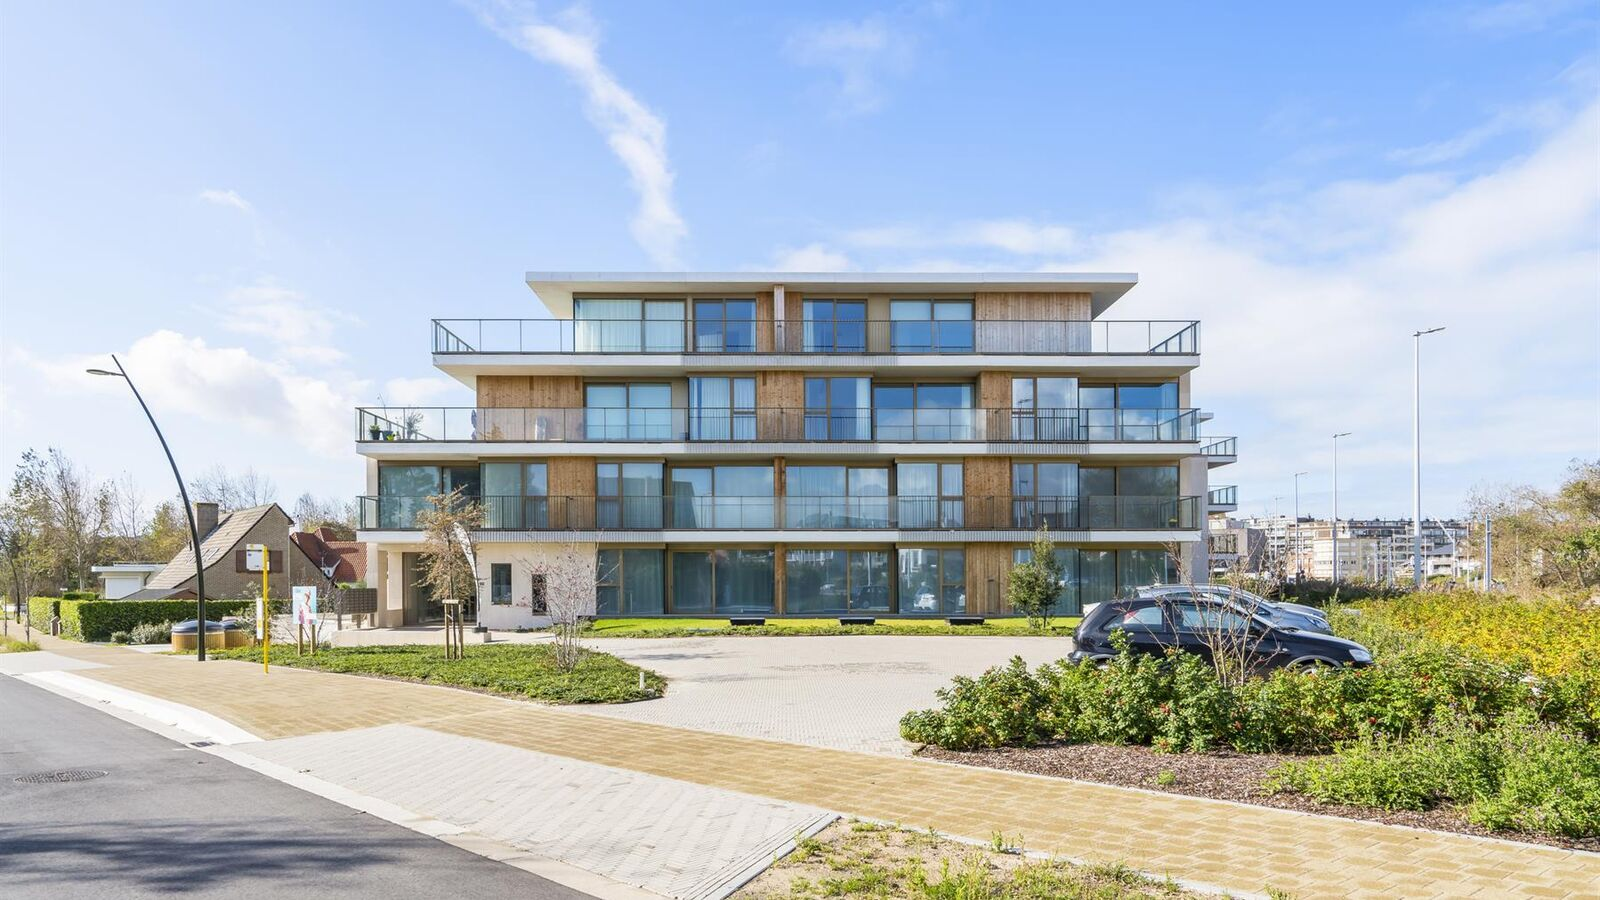 Residences-services for sale in Sint-Idesbald